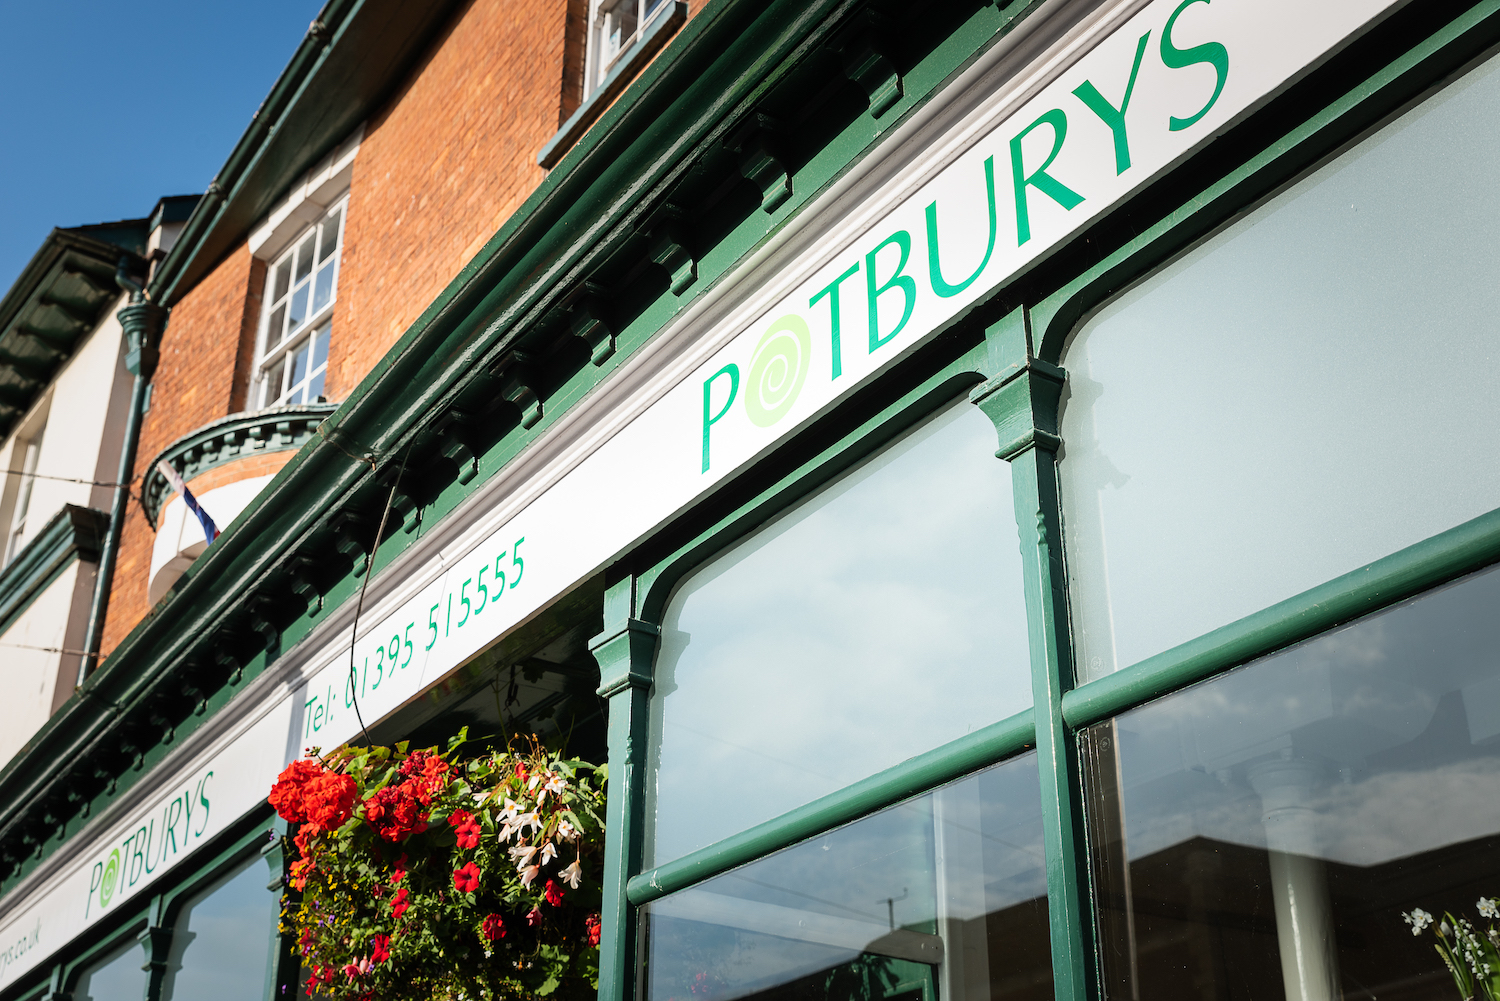 Potburys furniture shop is open